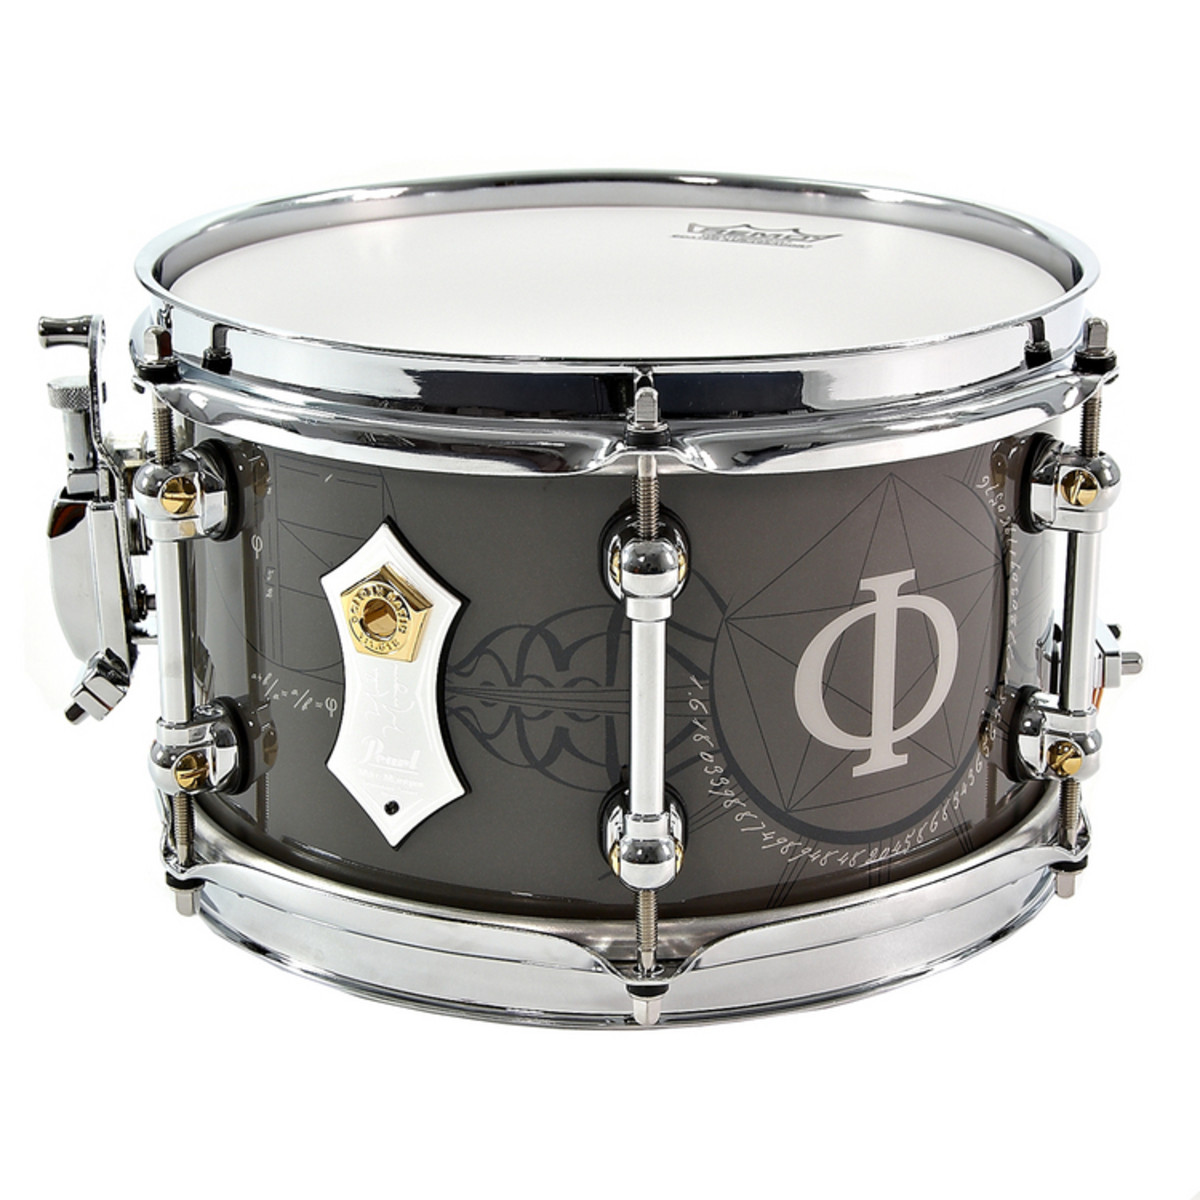 Snare Drum Pearl Logo : disc pearl mm1062 mike mangini signature snare at gear4music ~ Hamham.info Haus und Dekorationen